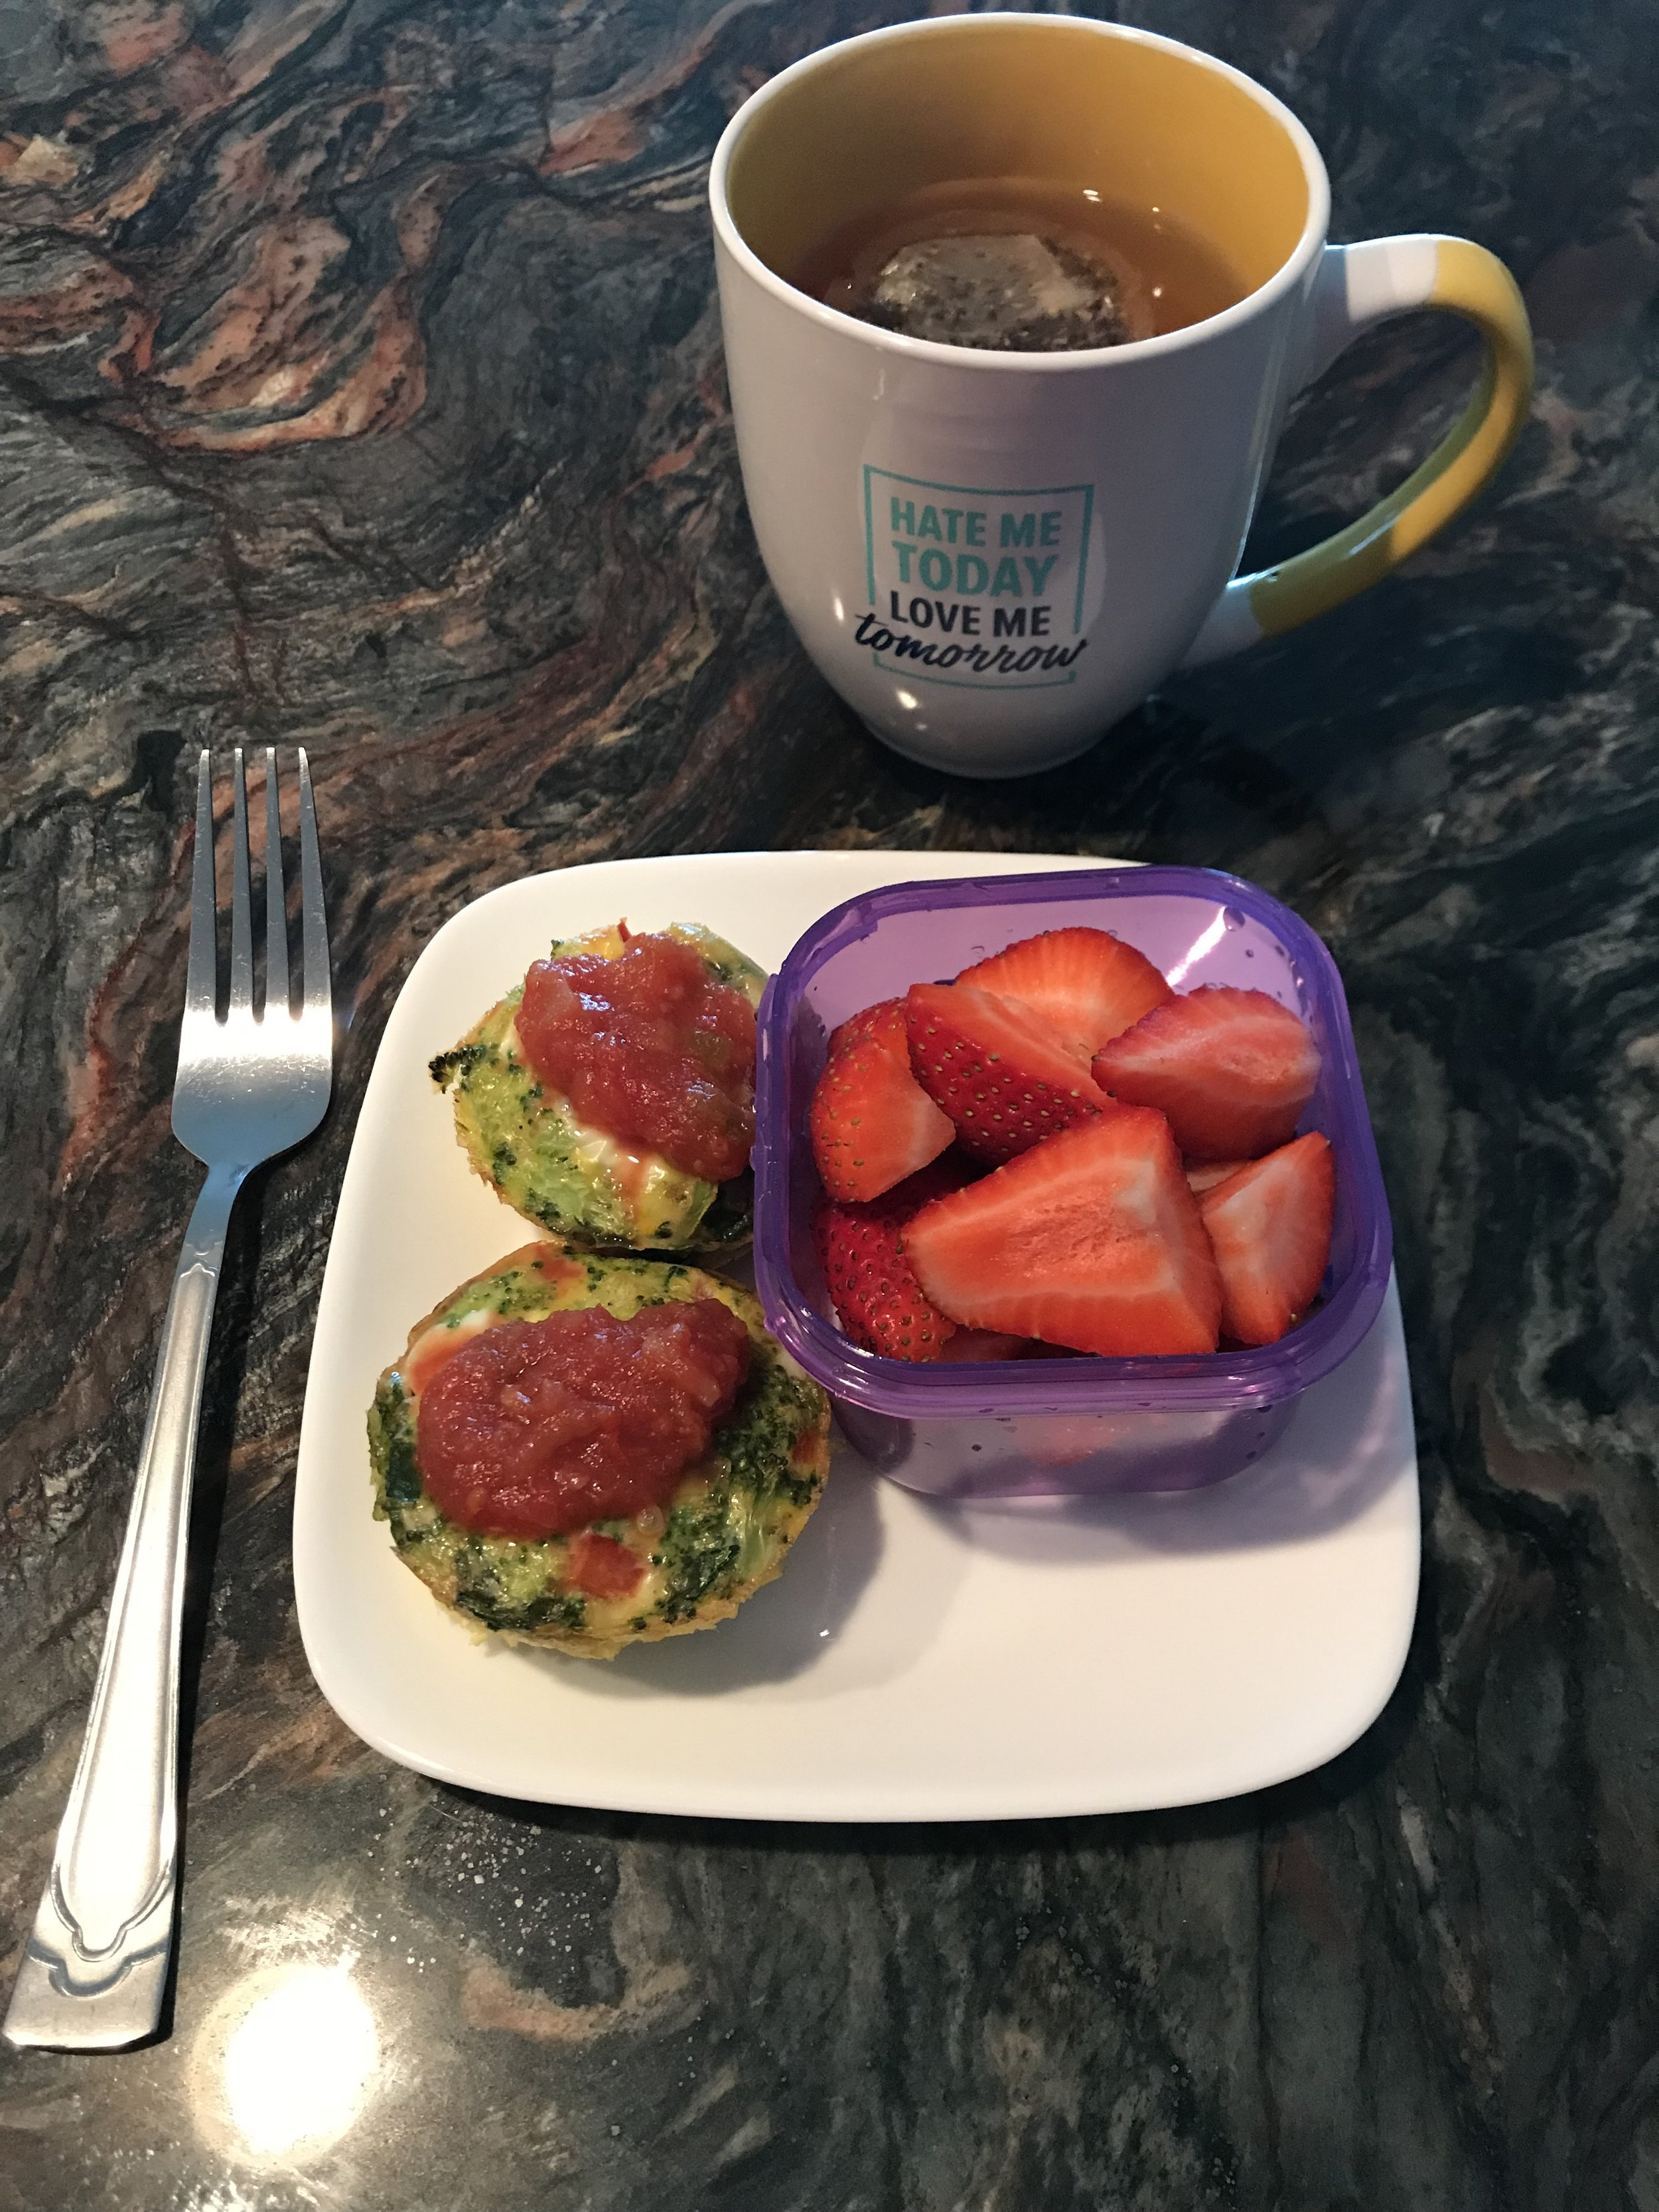 BREAKFAST - Strawberries, Vegetable Egg Cups topped with Salsa.